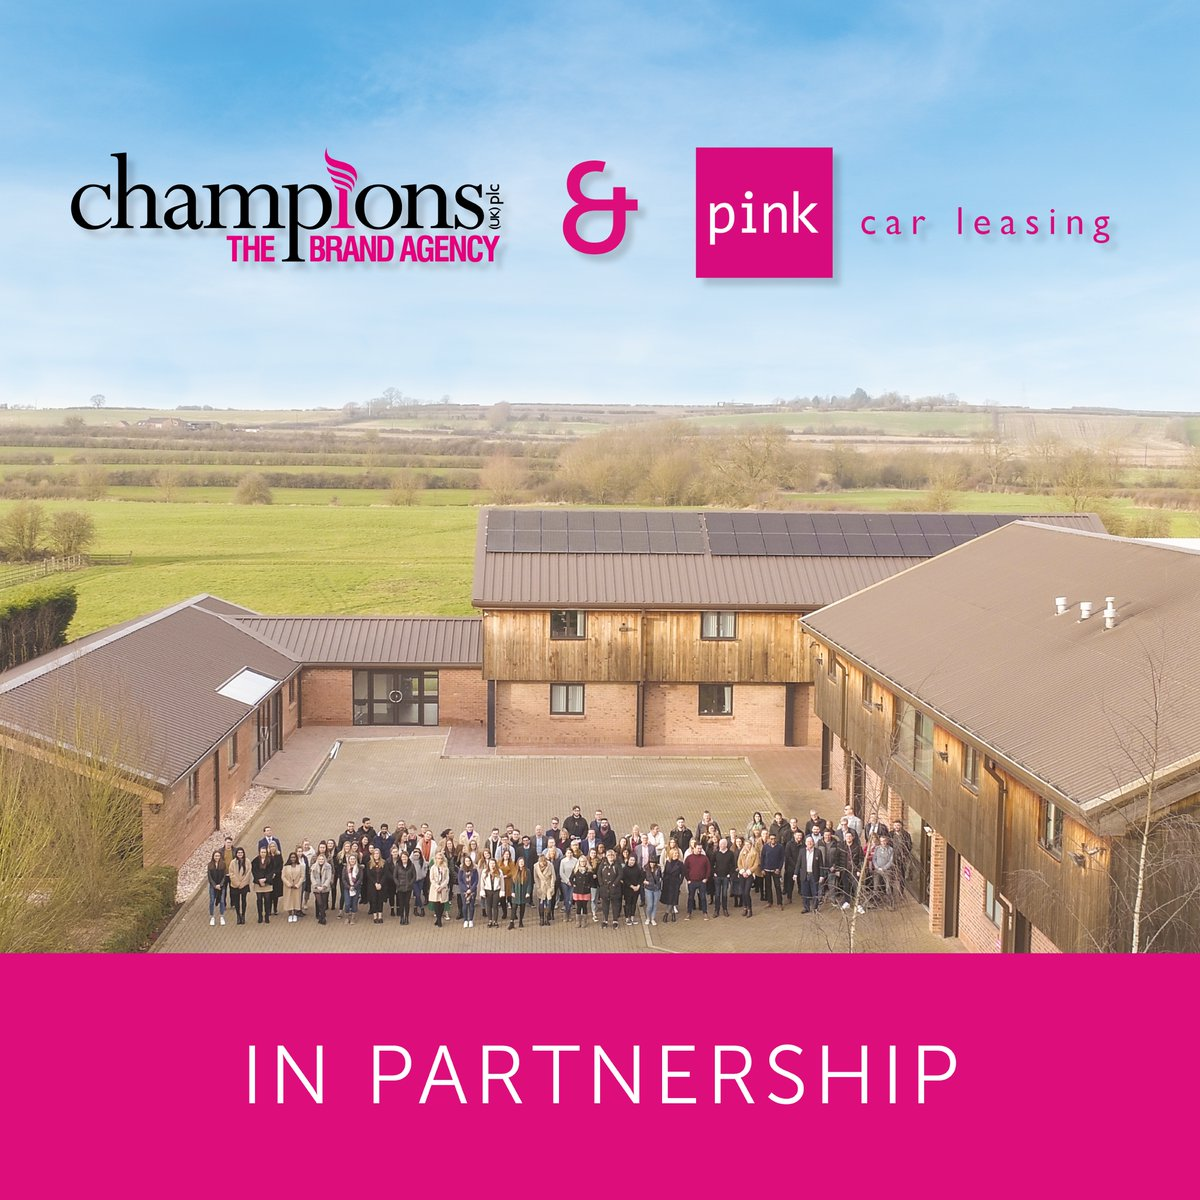 Were pleased to announce our new partnership with @PinkCarLeasing. Both companies will use their respective strengths to support different elements of each other's business. We look forward to building on our partnership with Pink Car Leasing over the next few months!